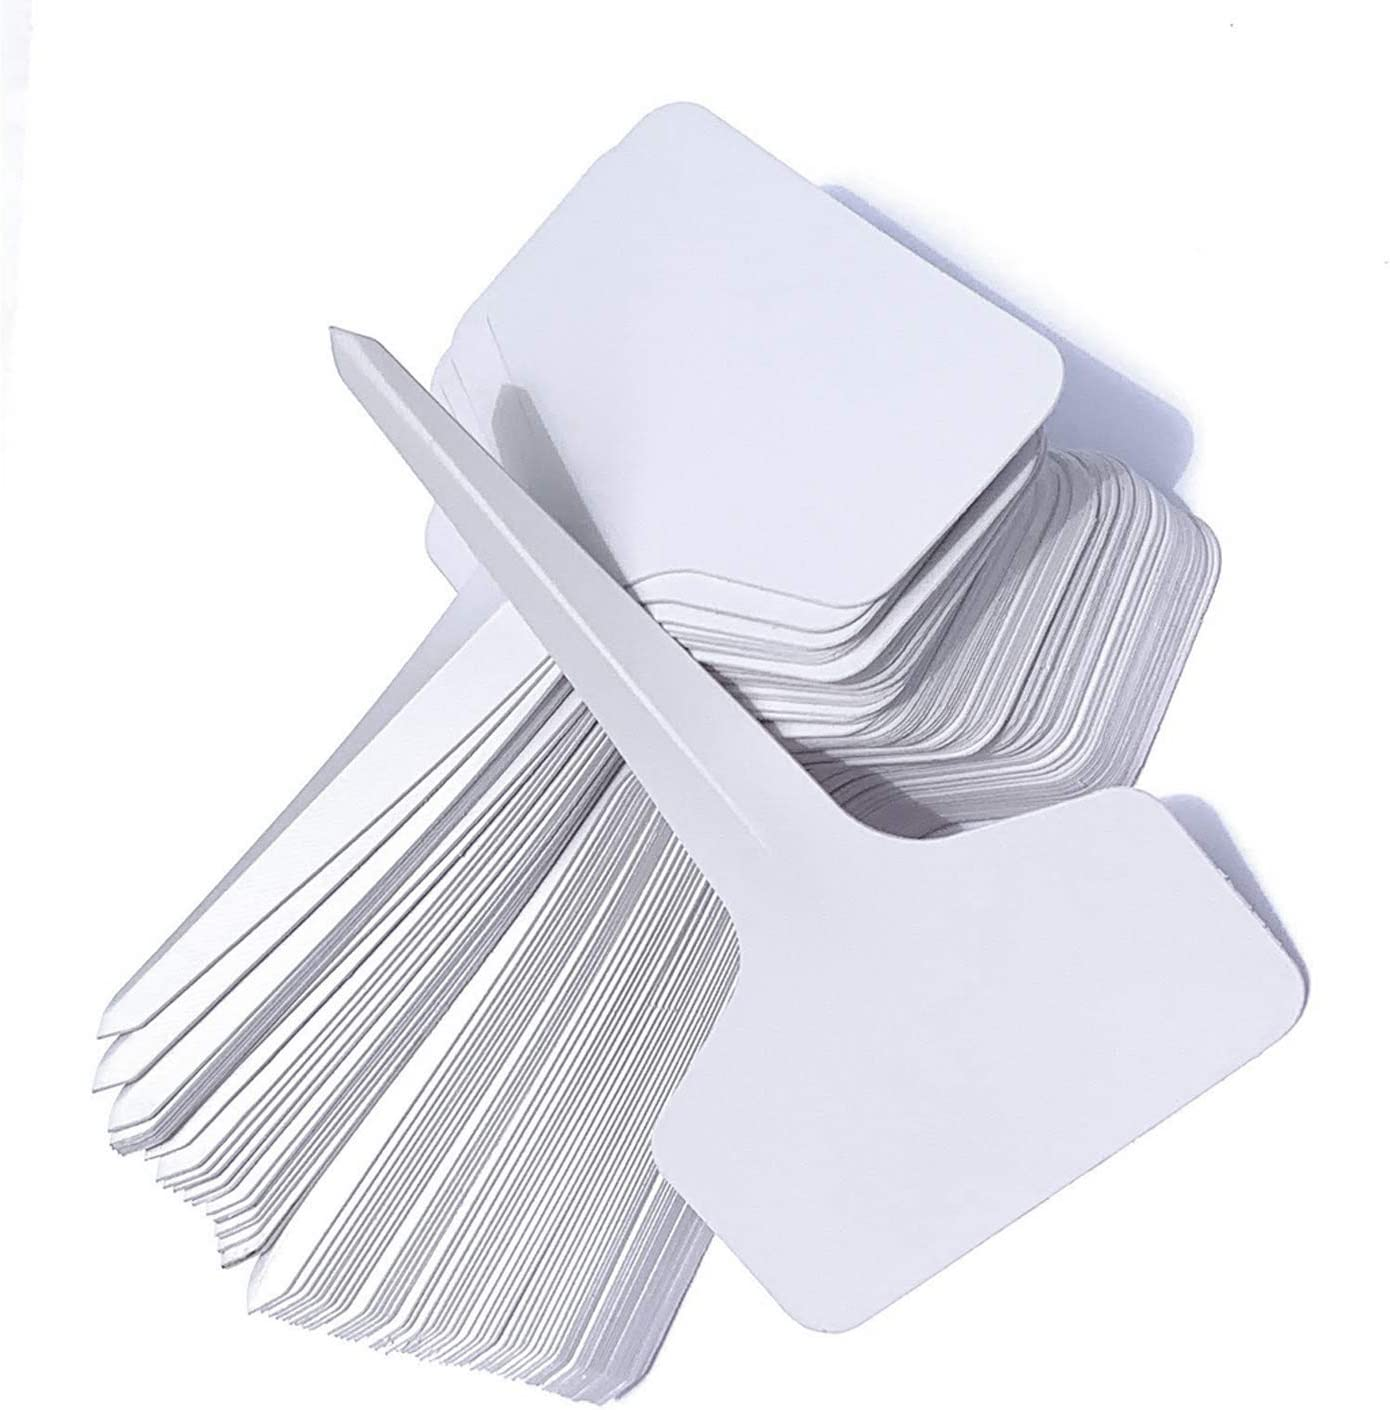 JLP Home Solutions White Garden Labels T-Type Plant Tags Set of 100 6x10cm. Reusable Waterproof Nursery Plant Labels for Vegetables Herbs seedlings Flowers. Useful Garden Signs. (White no Marker)